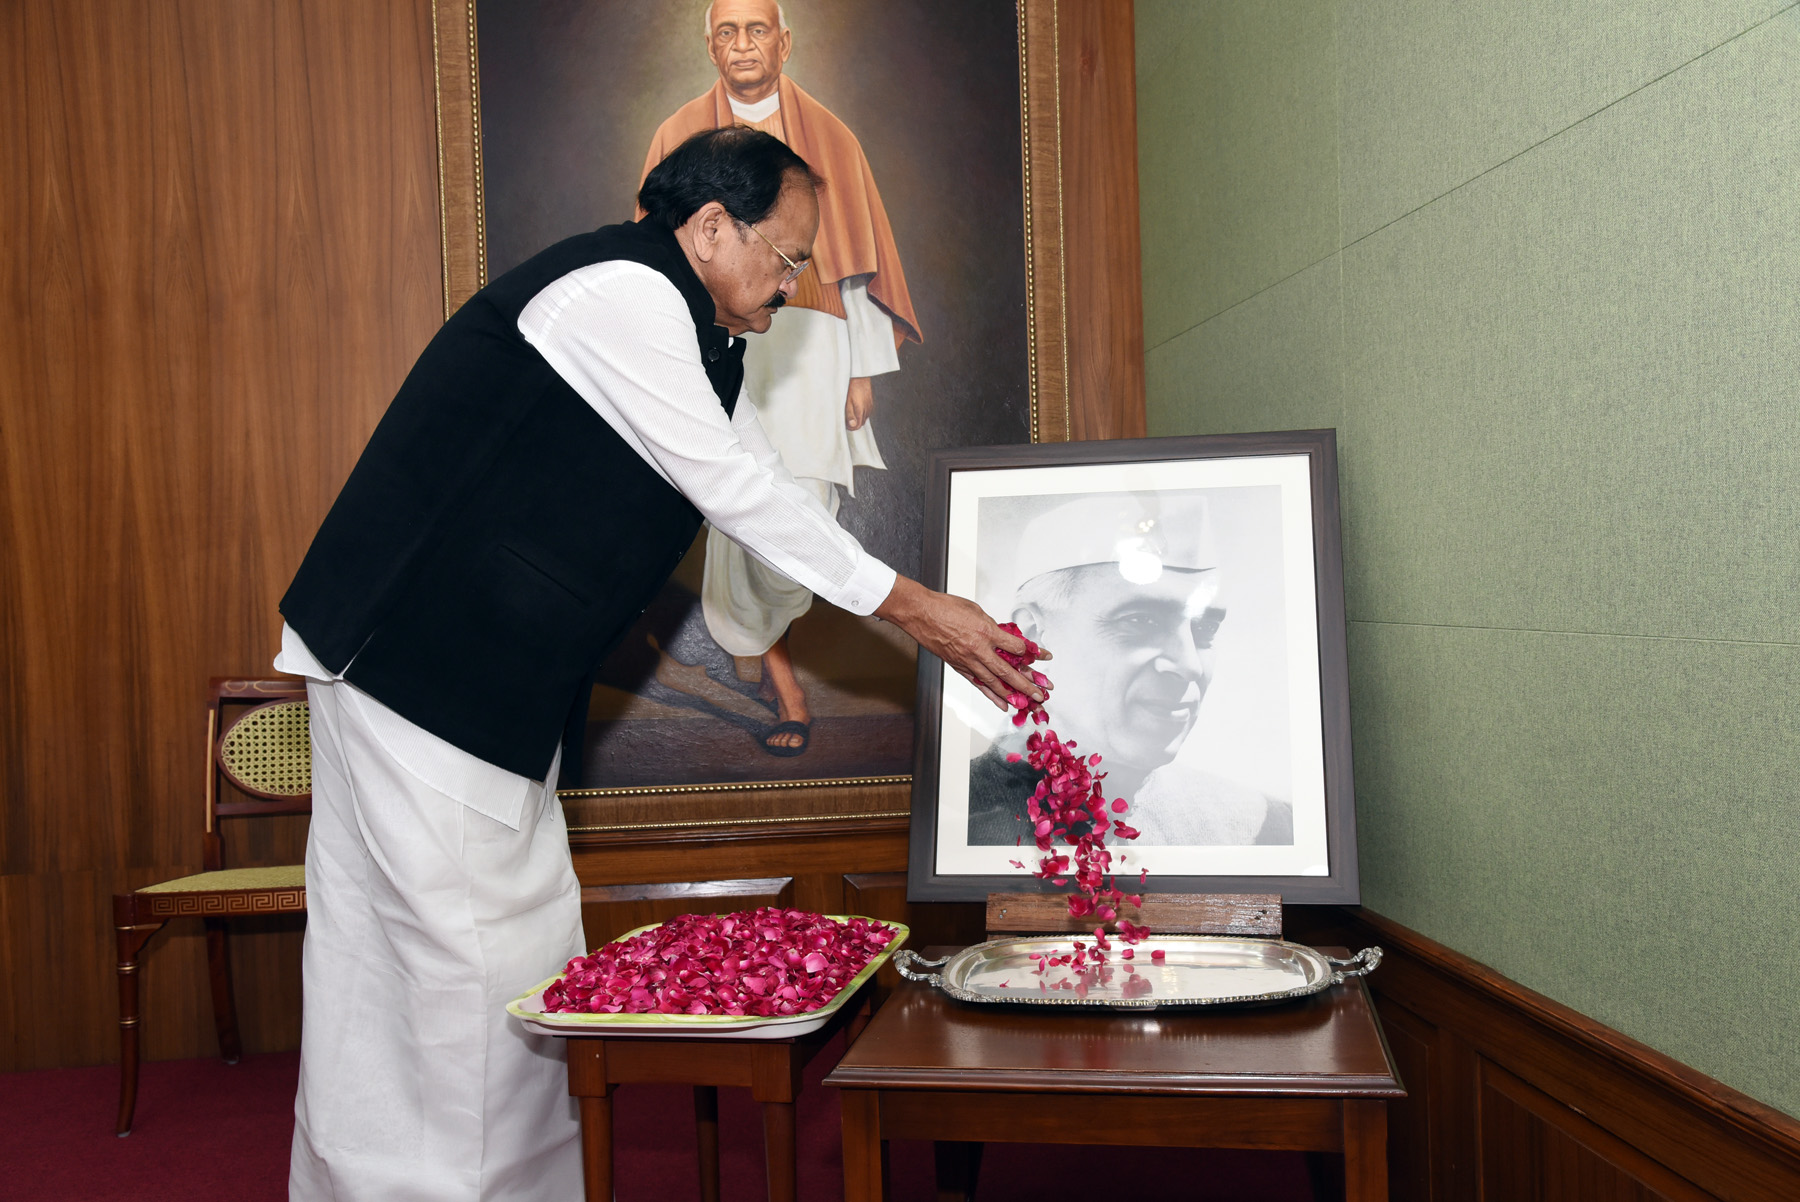 The Vice President, Shri M. Venkaiah Naidu paying floral tributes to Pandit Jawaharlal Nehru on the occasion of Children's Day, in New Delhi on 14 November, 2019.